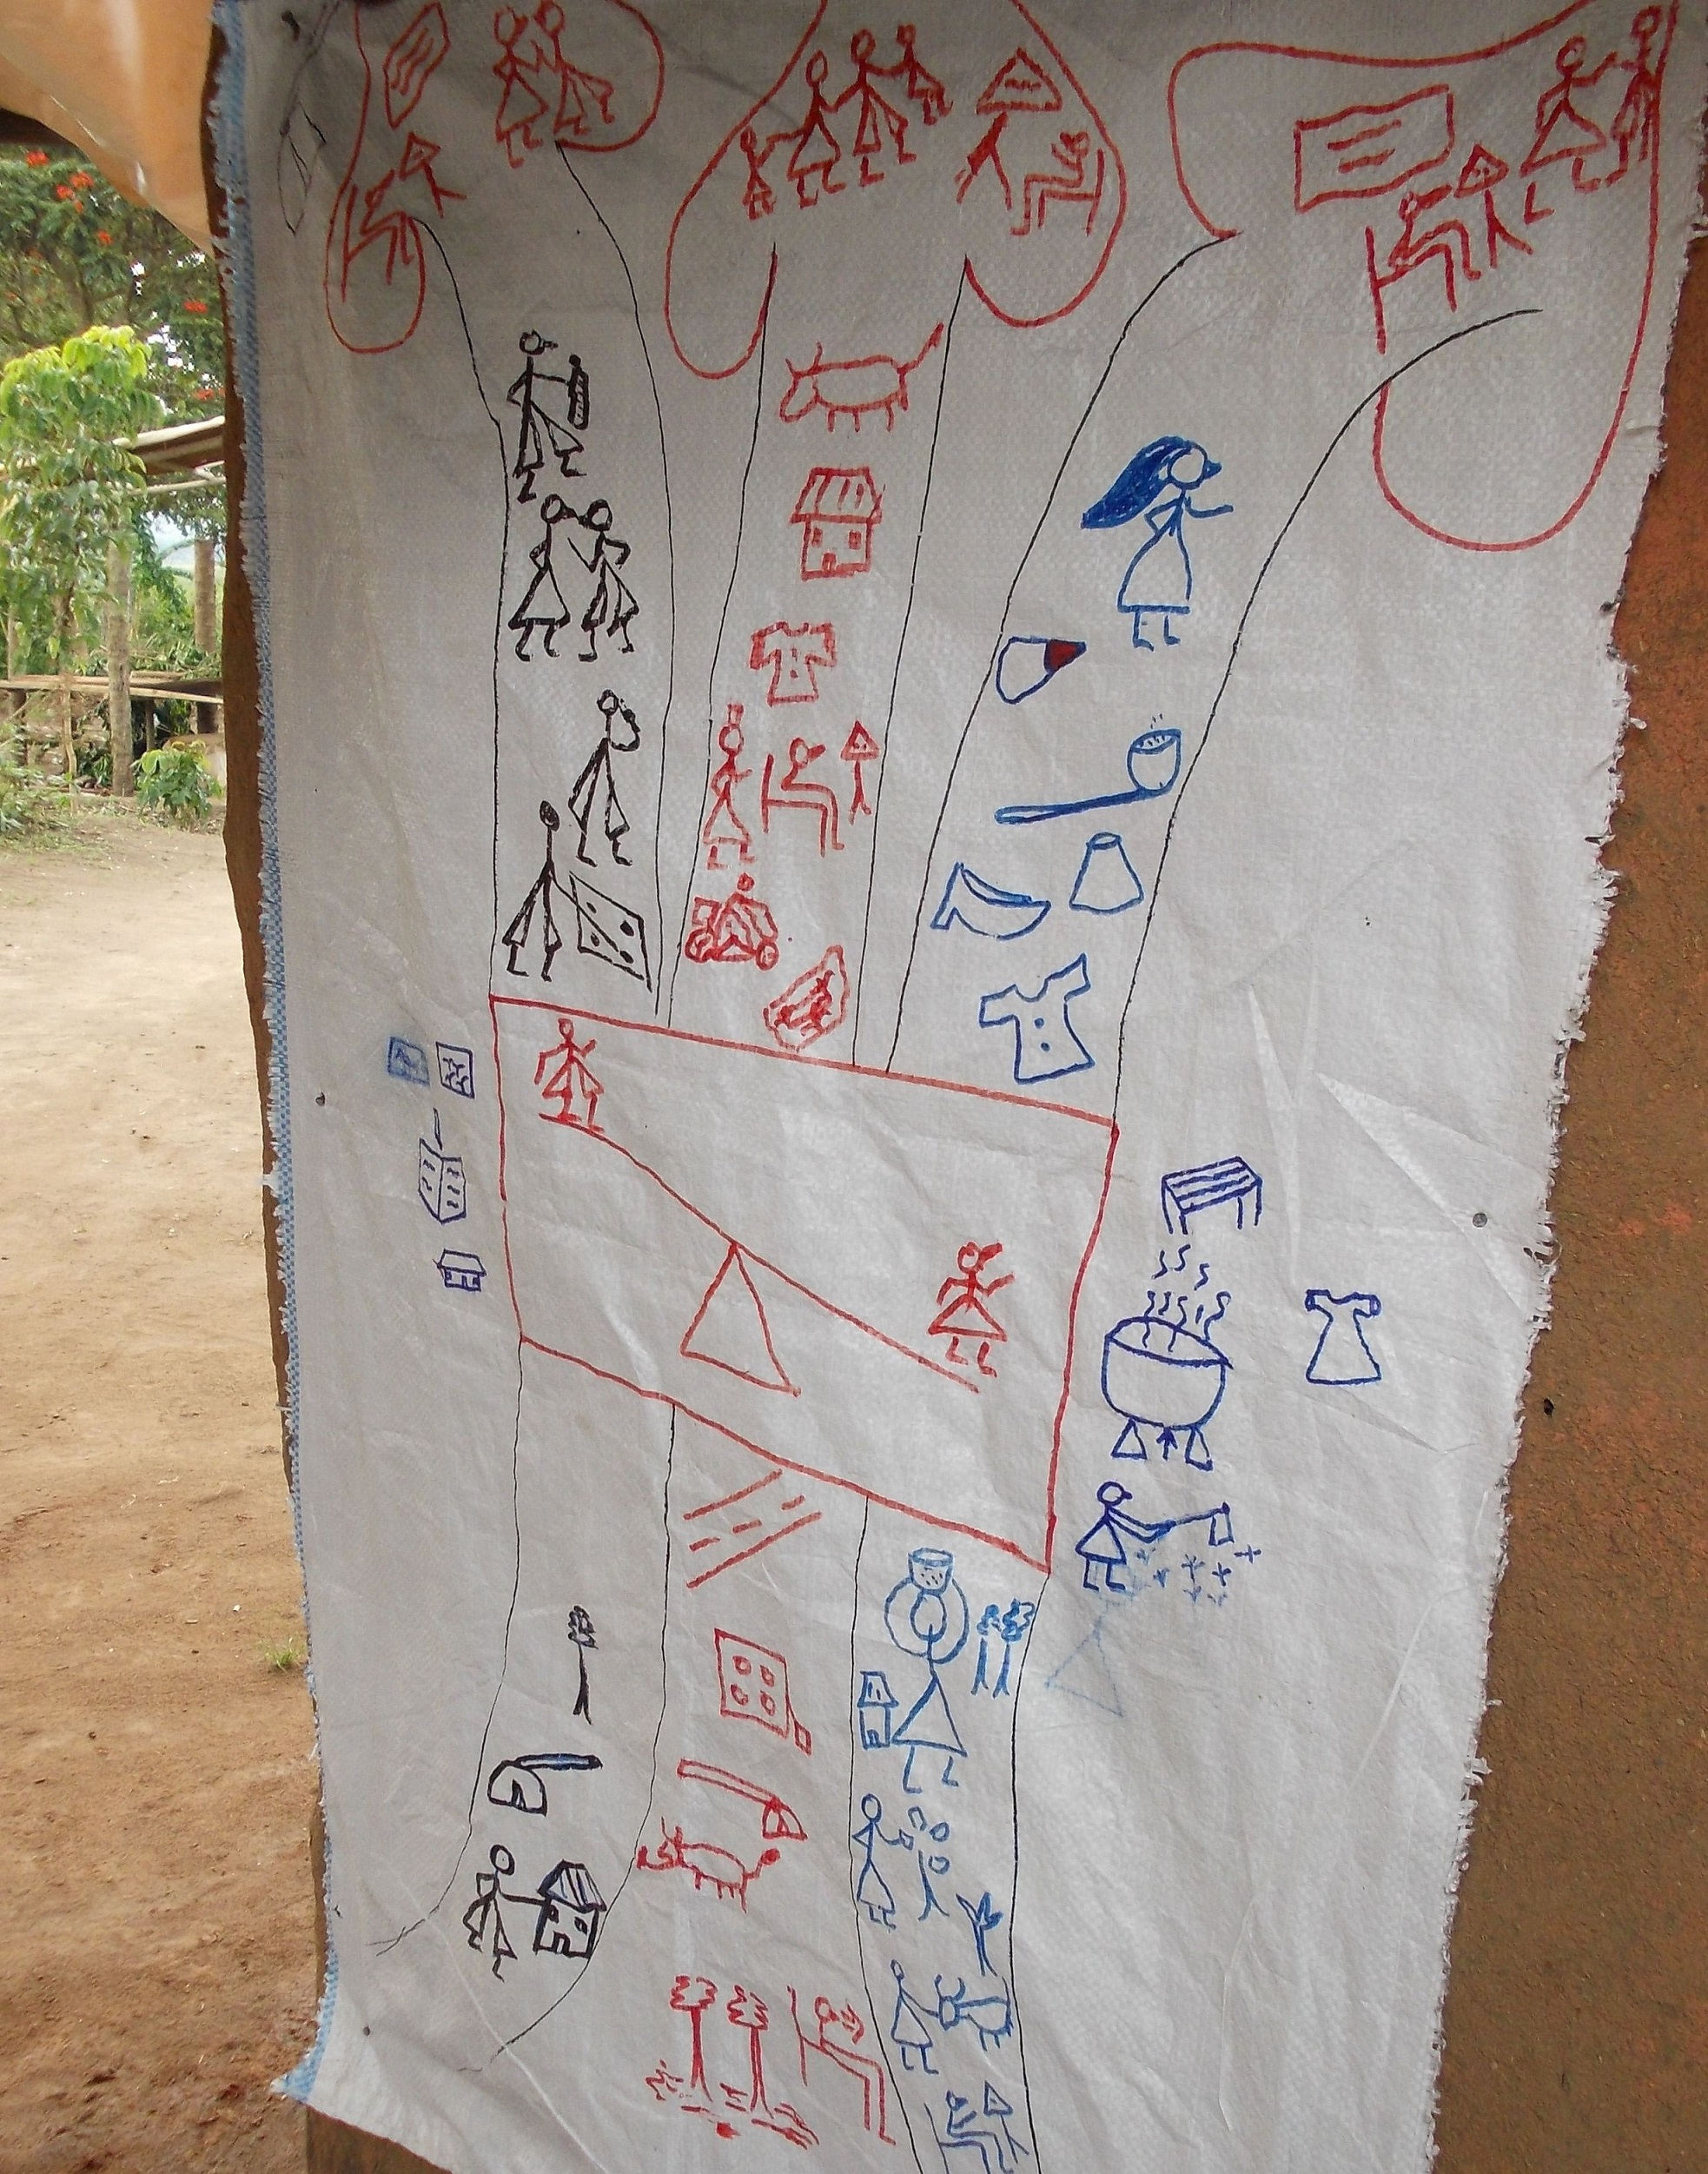 Members of the Kufuna Kwefaako Farmers Group in Uganda visualize the gendered division of labor in their families. Photo: Carsta Neuenroth/Brot für die Welt